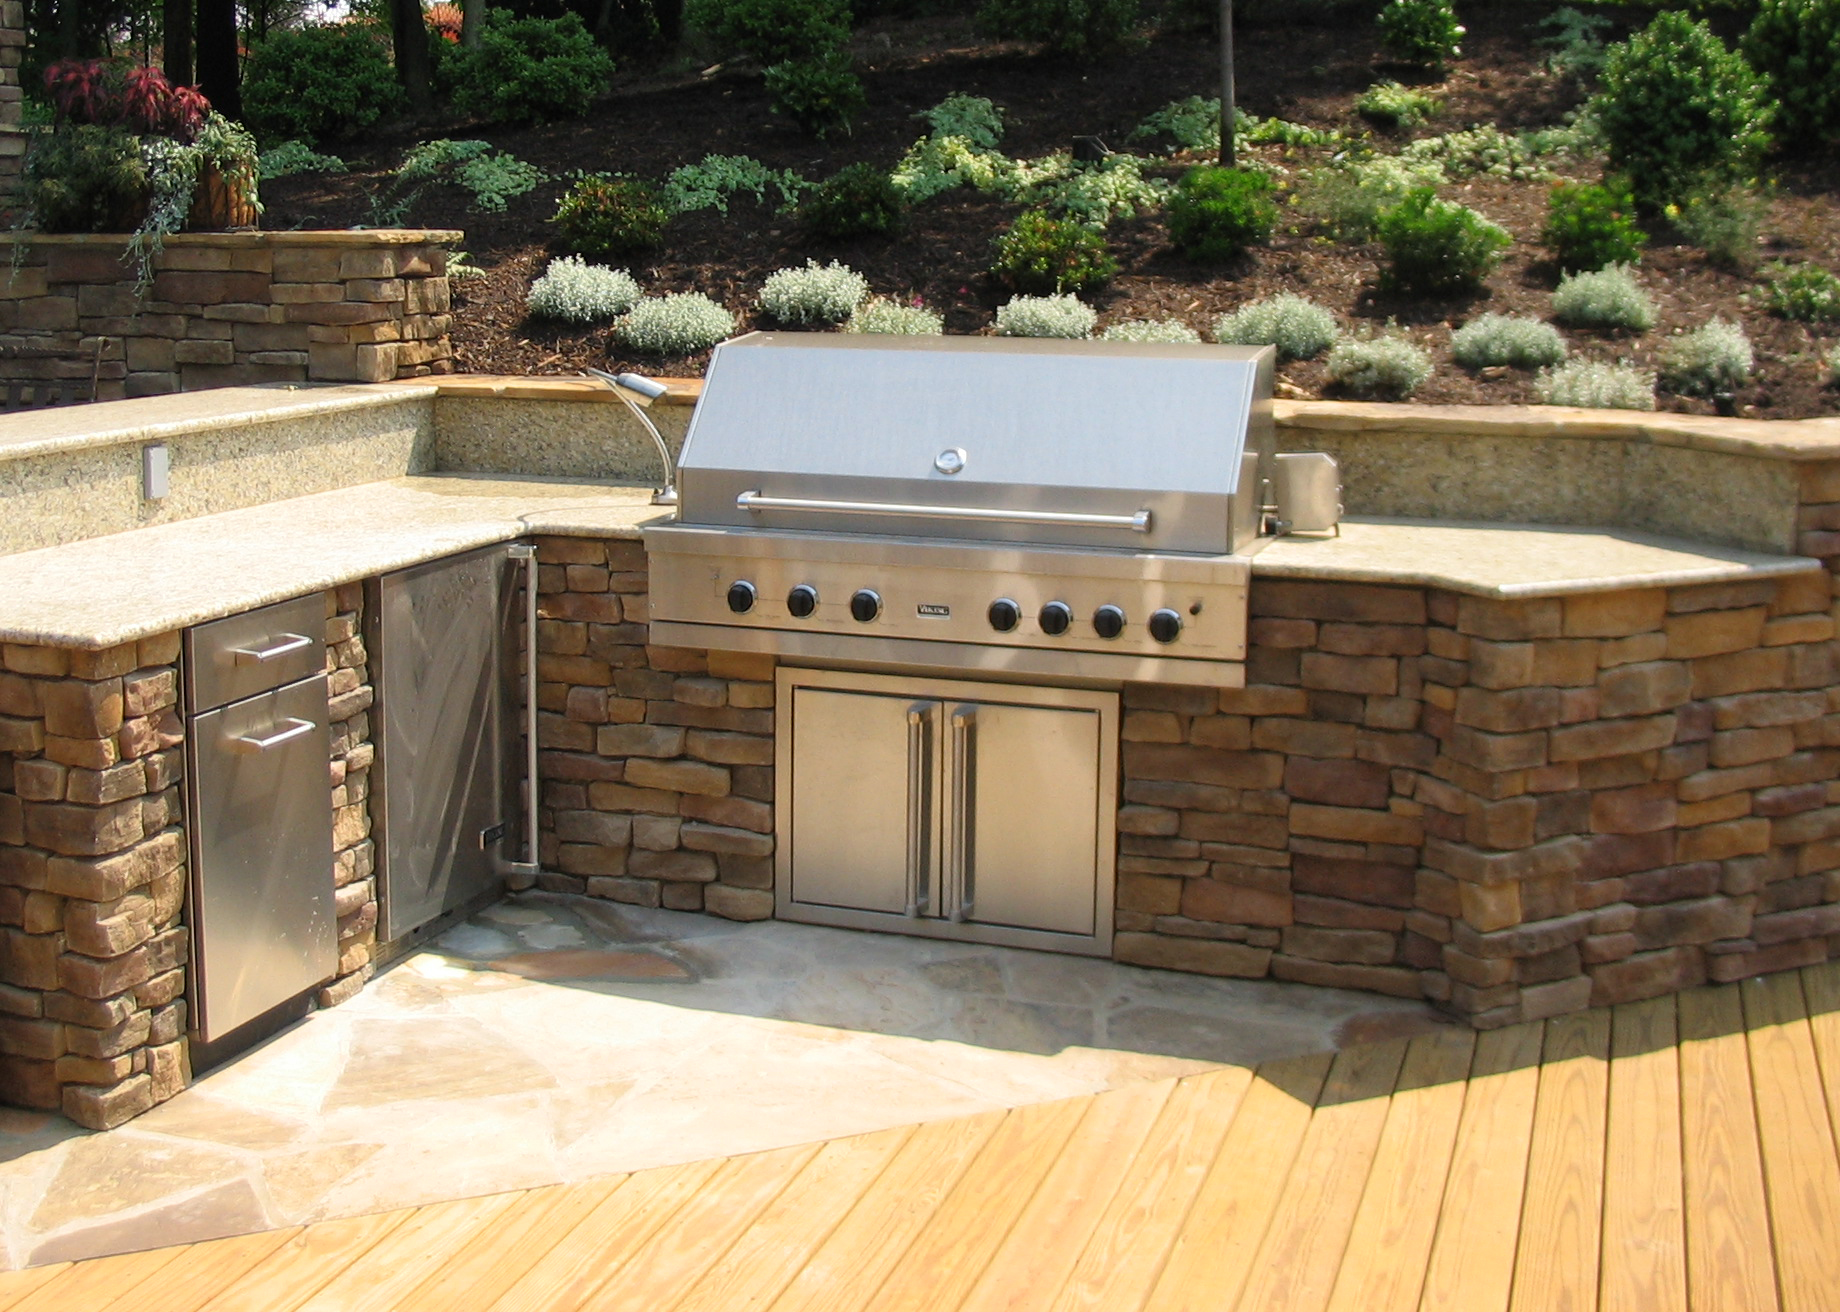 Designing an outdoor kitchen revolutionary gardens for Outdoor kitchen designs small spaces